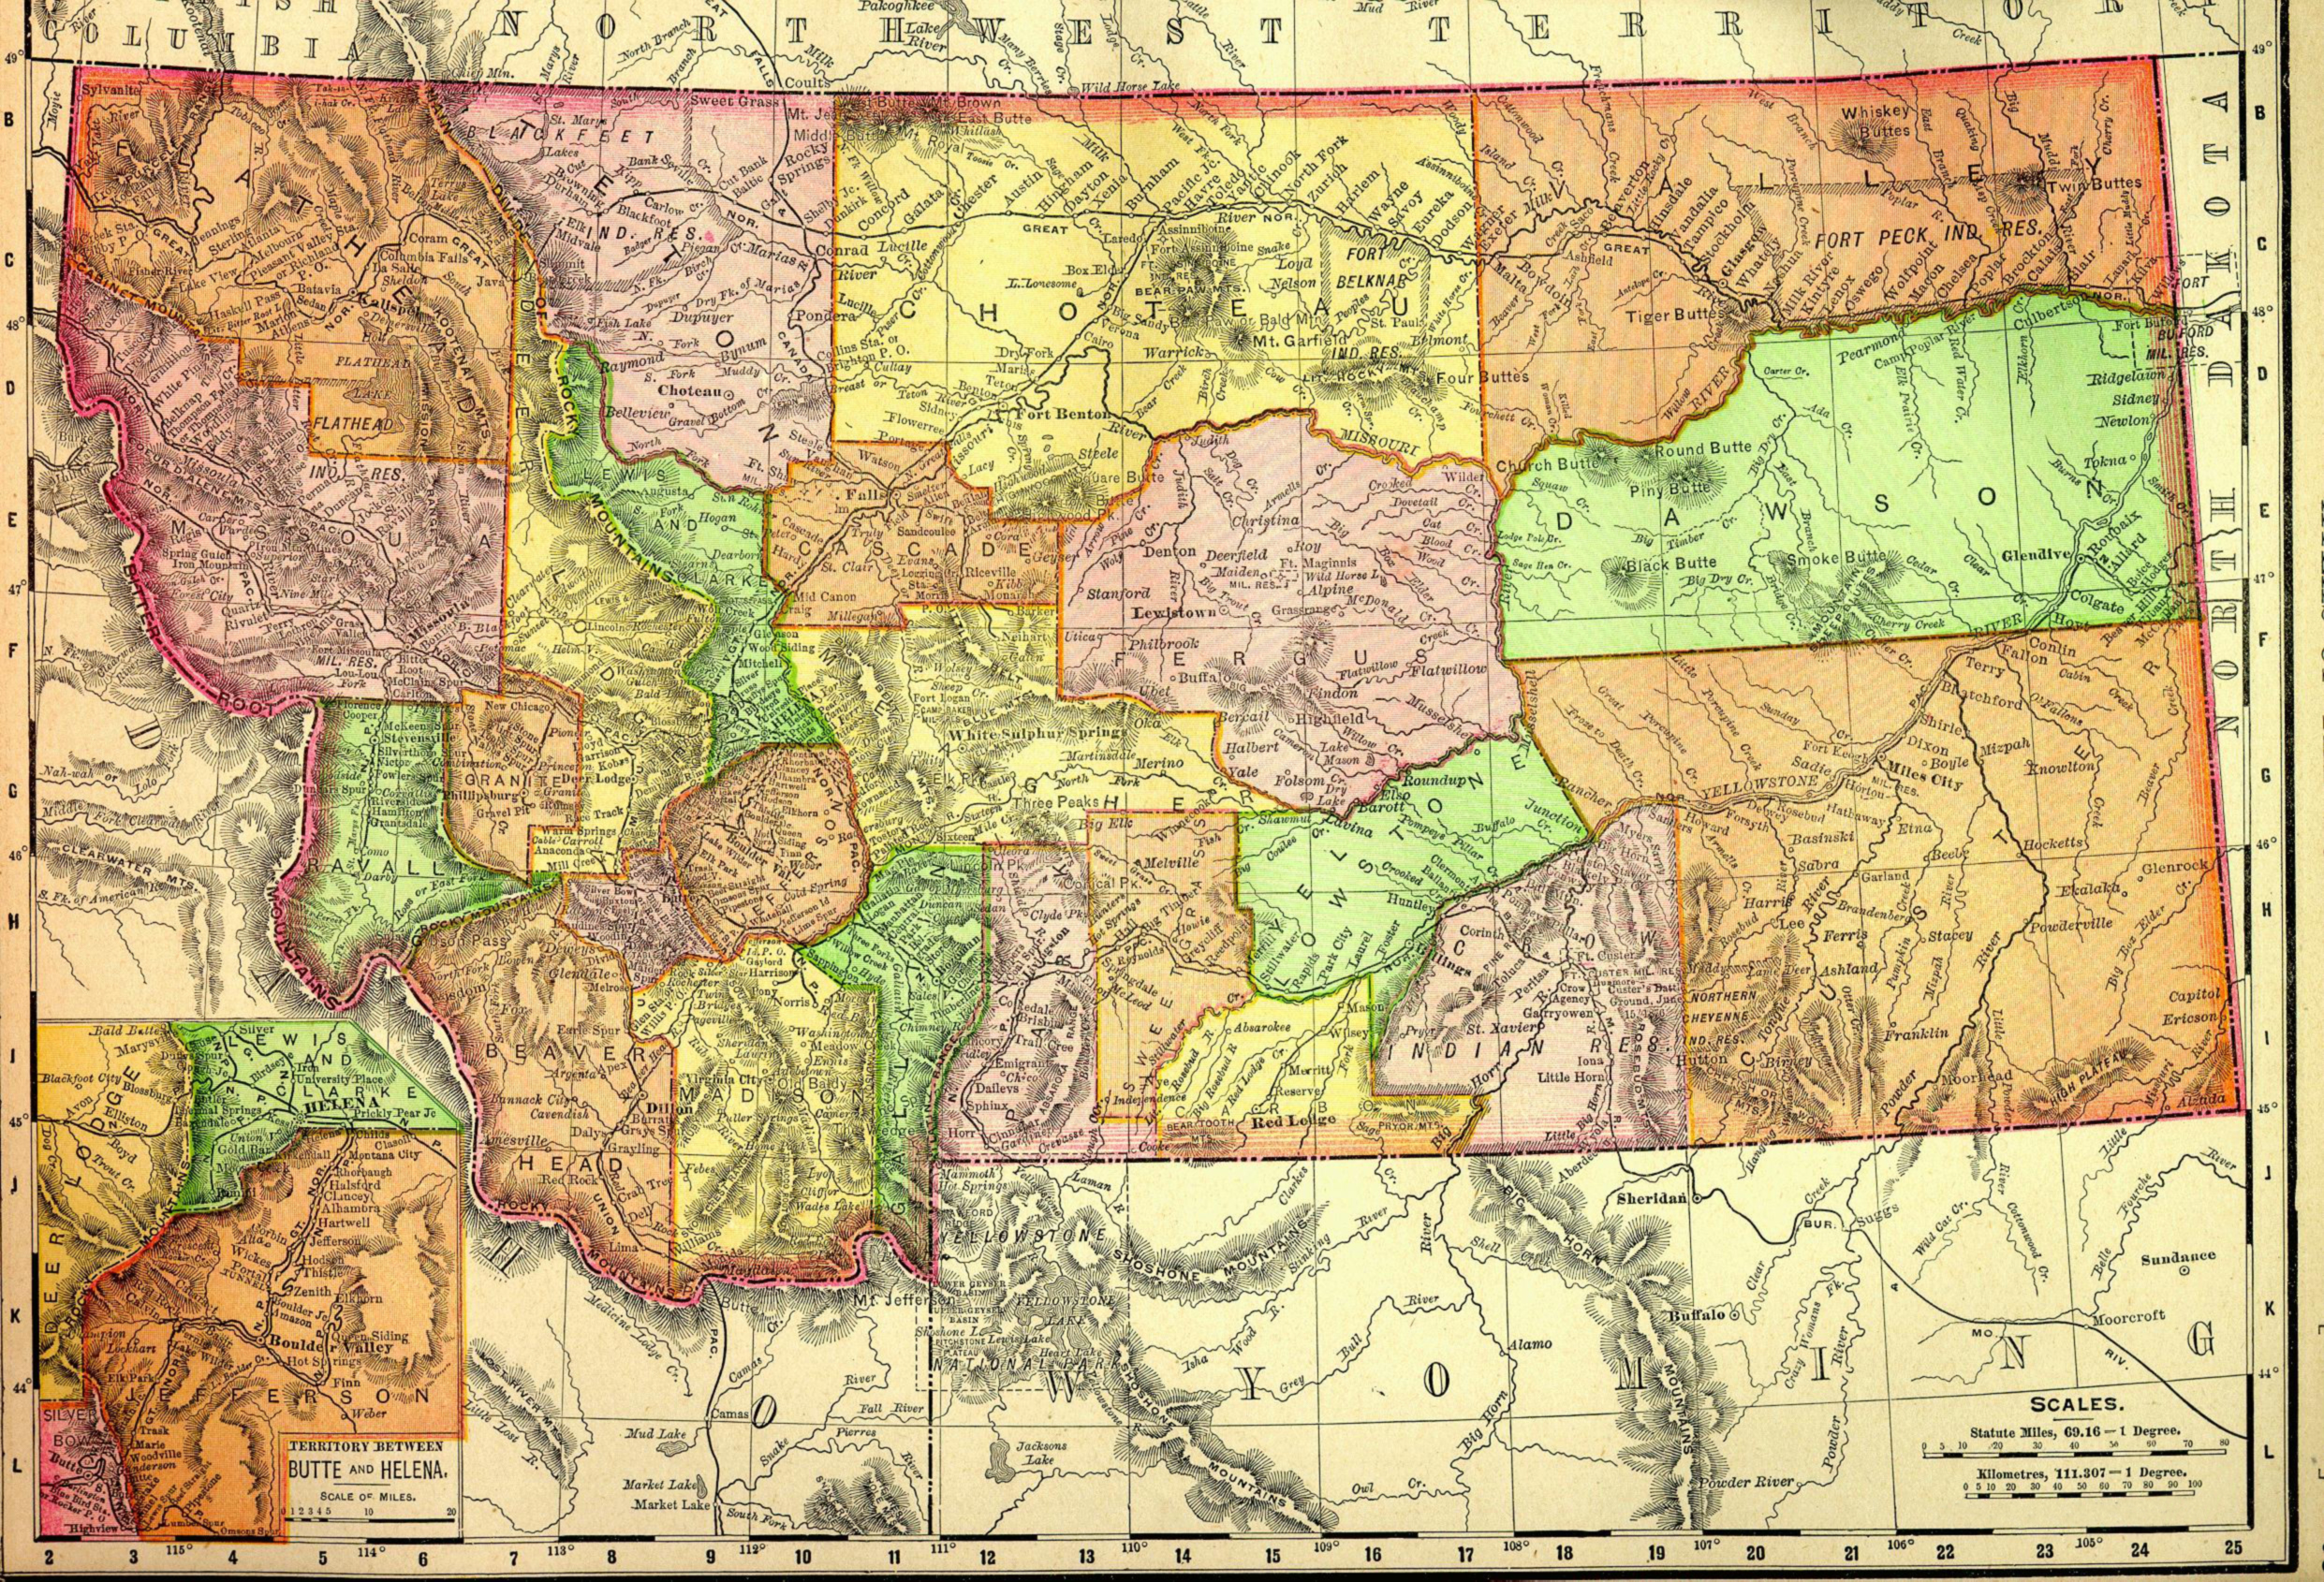 Looming deadline will test consensus in Montana redistricting commission